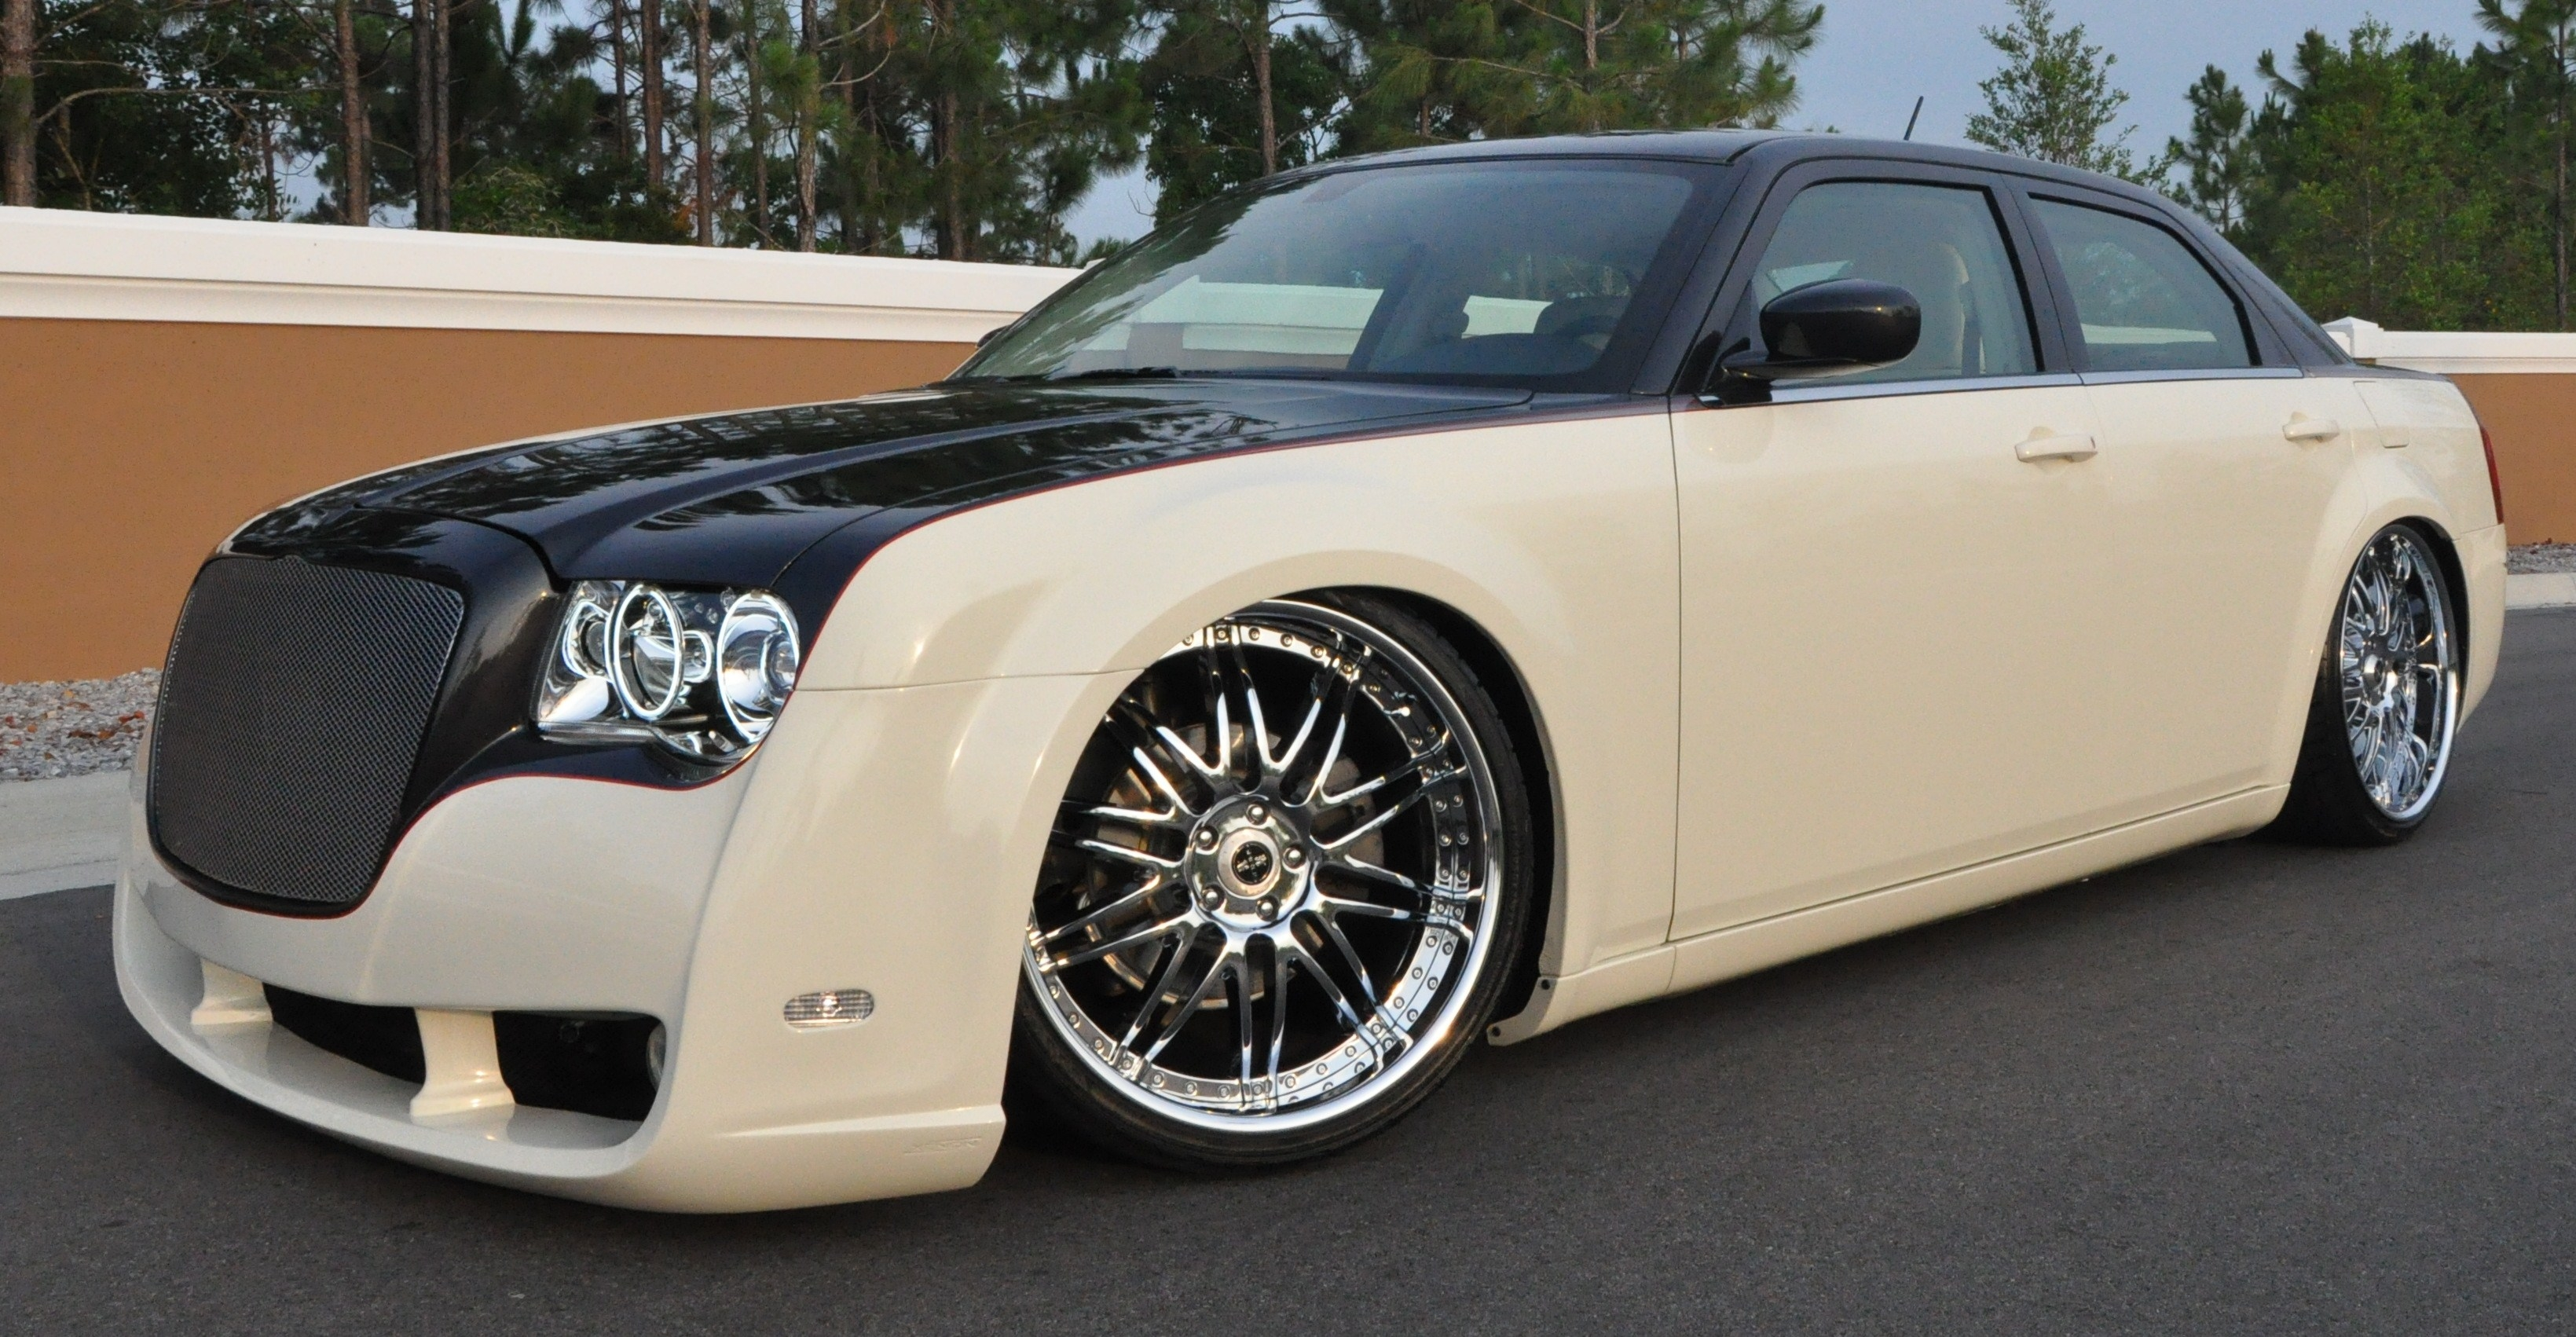 grinchr1's 2008 Chrysler 300